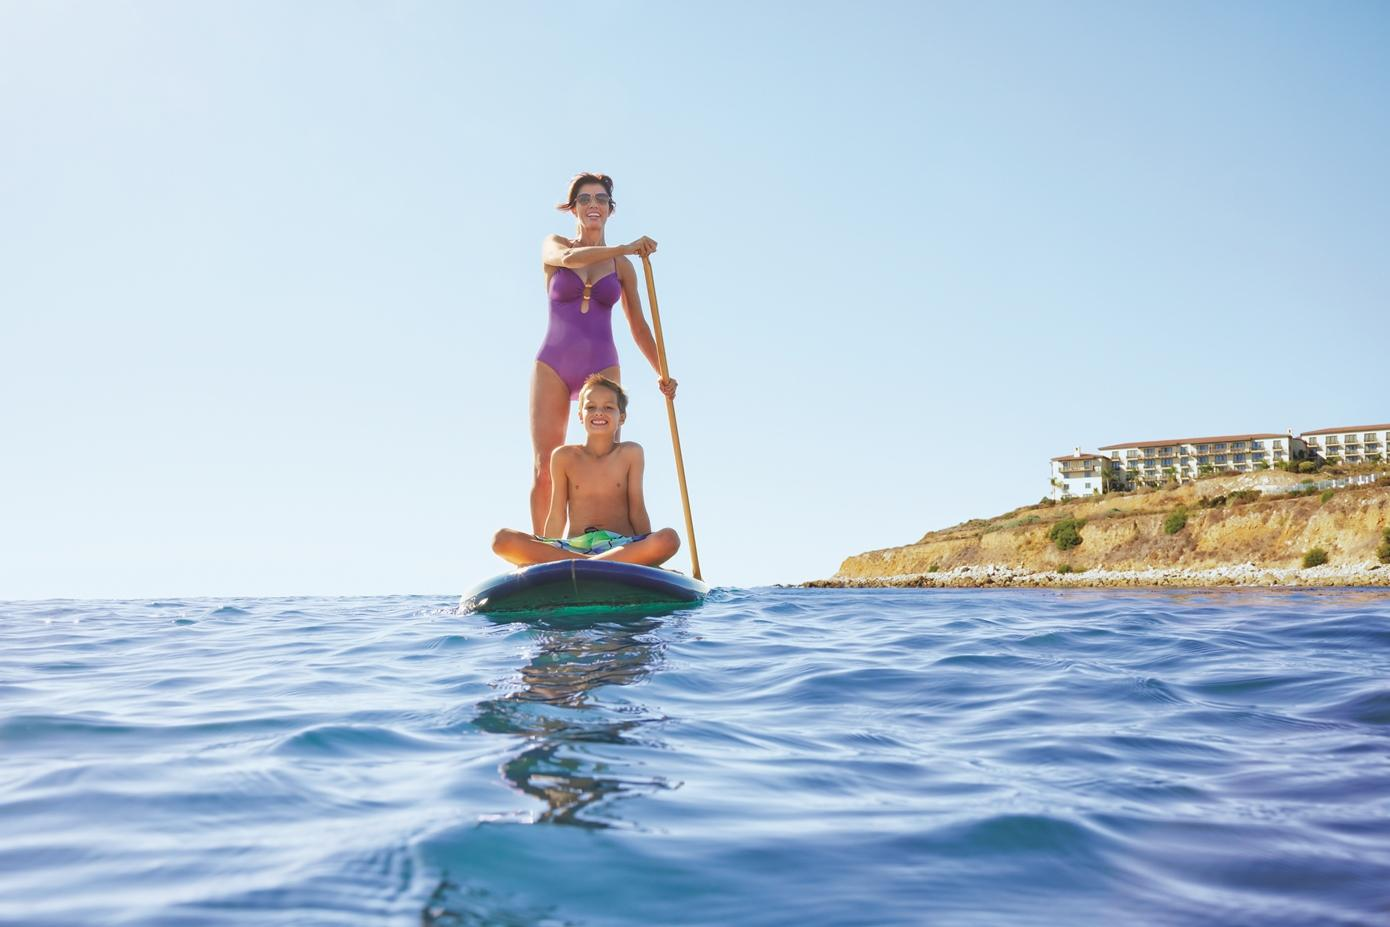 Paddle boarding from the beach cove